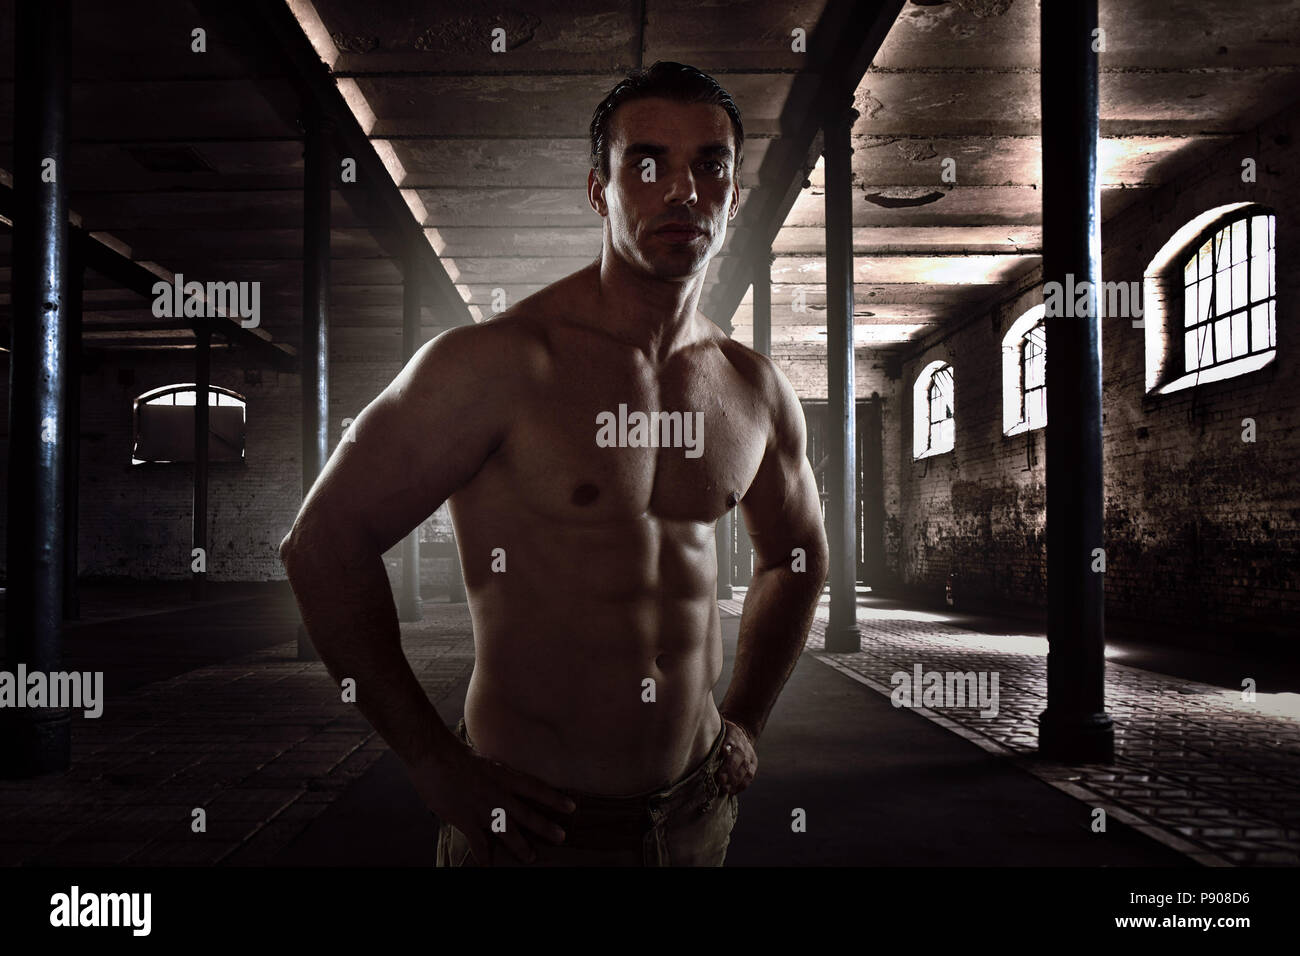 0688d57a7 Bodybuilding, young man muscular, fit male big muscles fitness, crossfit -  Stock Image